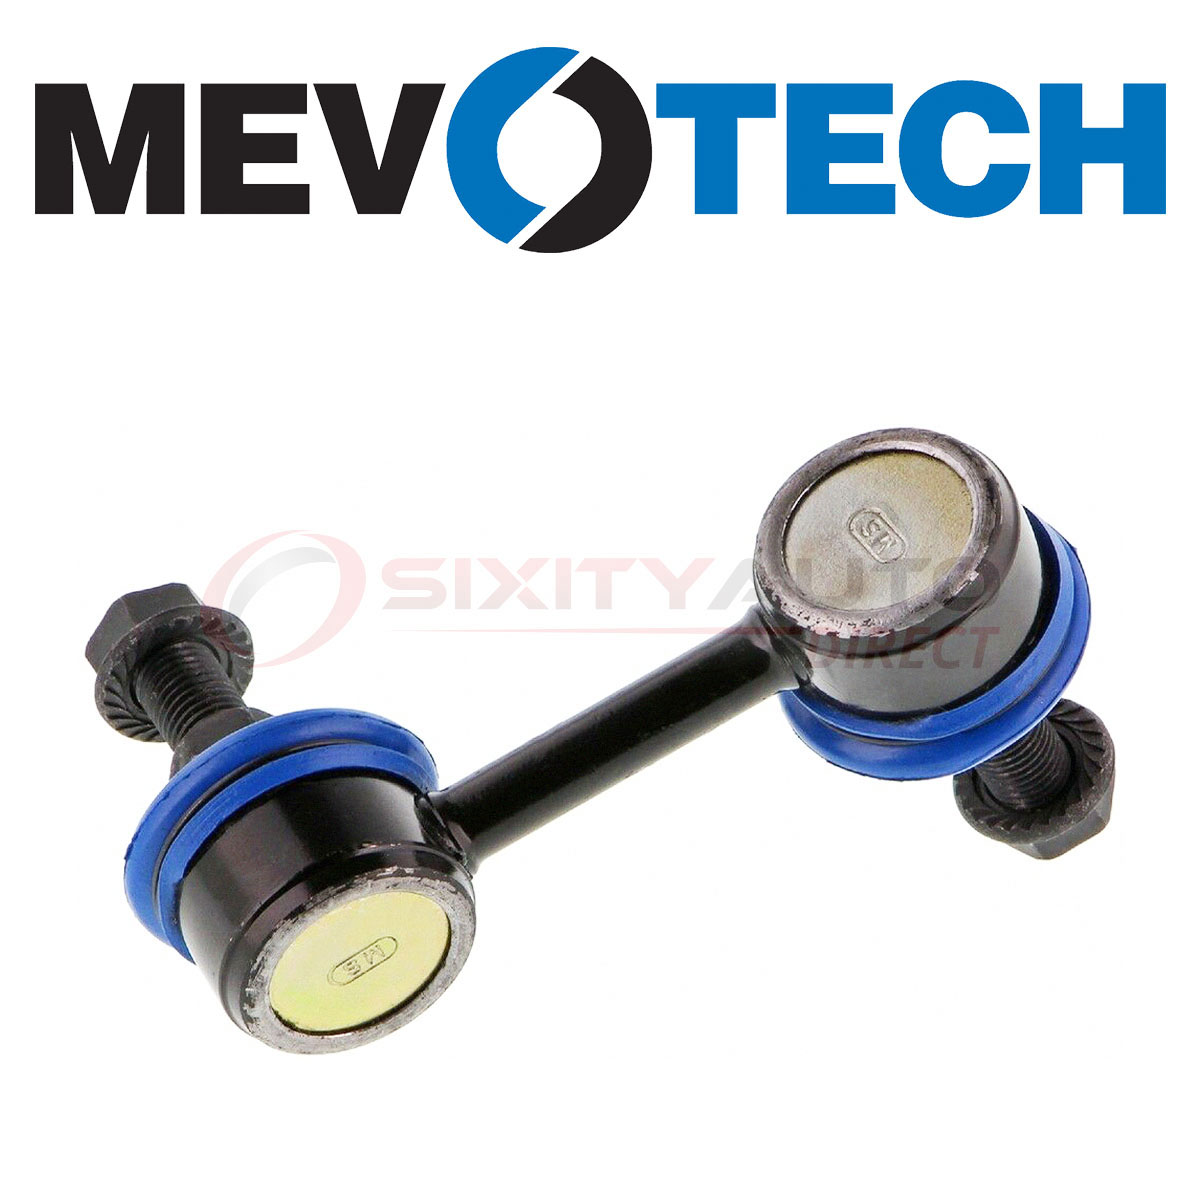 Mevotech Suspension Stabilizer Bar Link Kit For 2006-2011